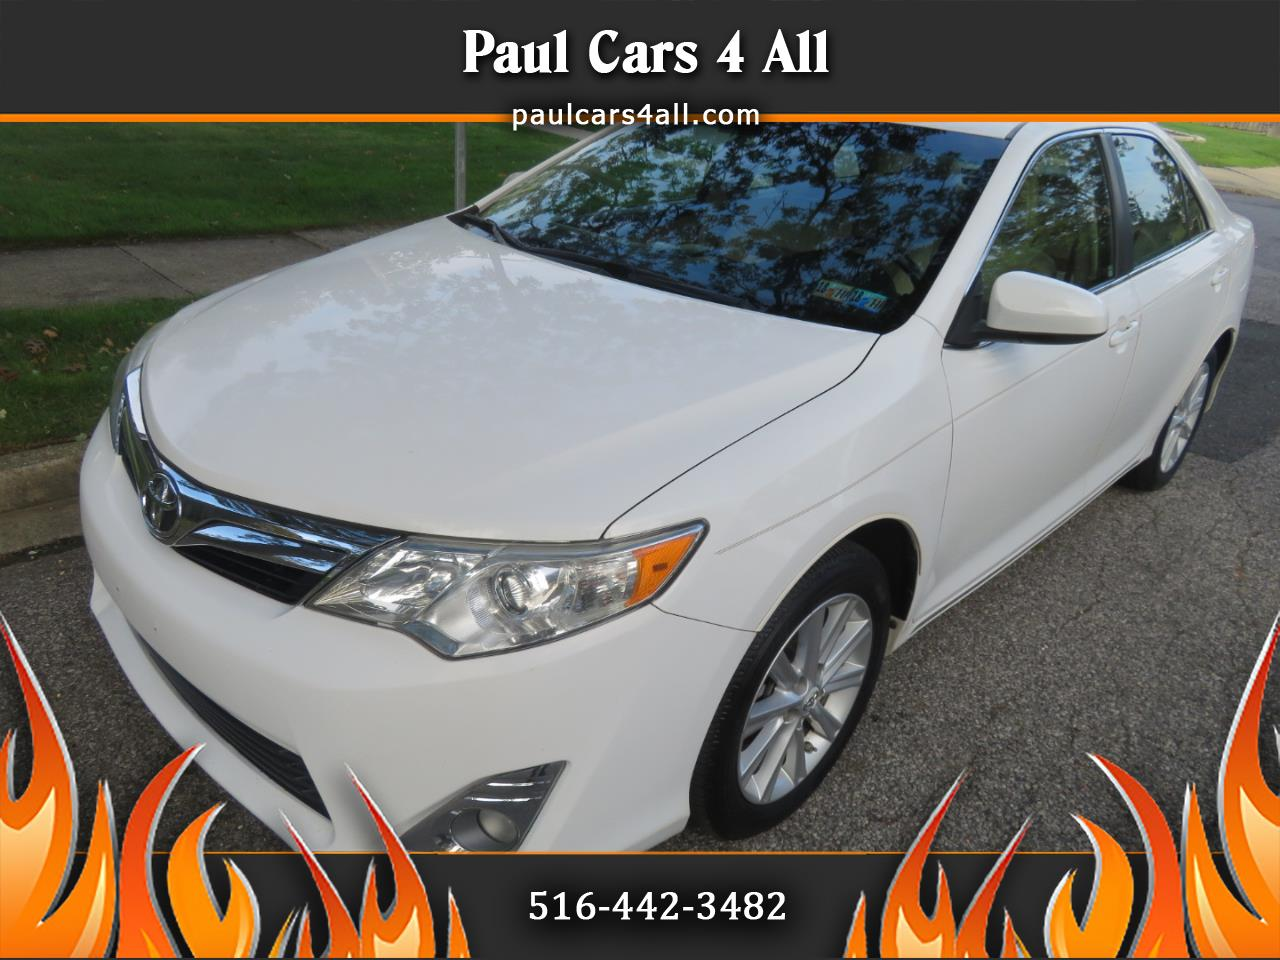 2012 Toyota Camry 4dr Sdn V6 Auto XLE (Natl)